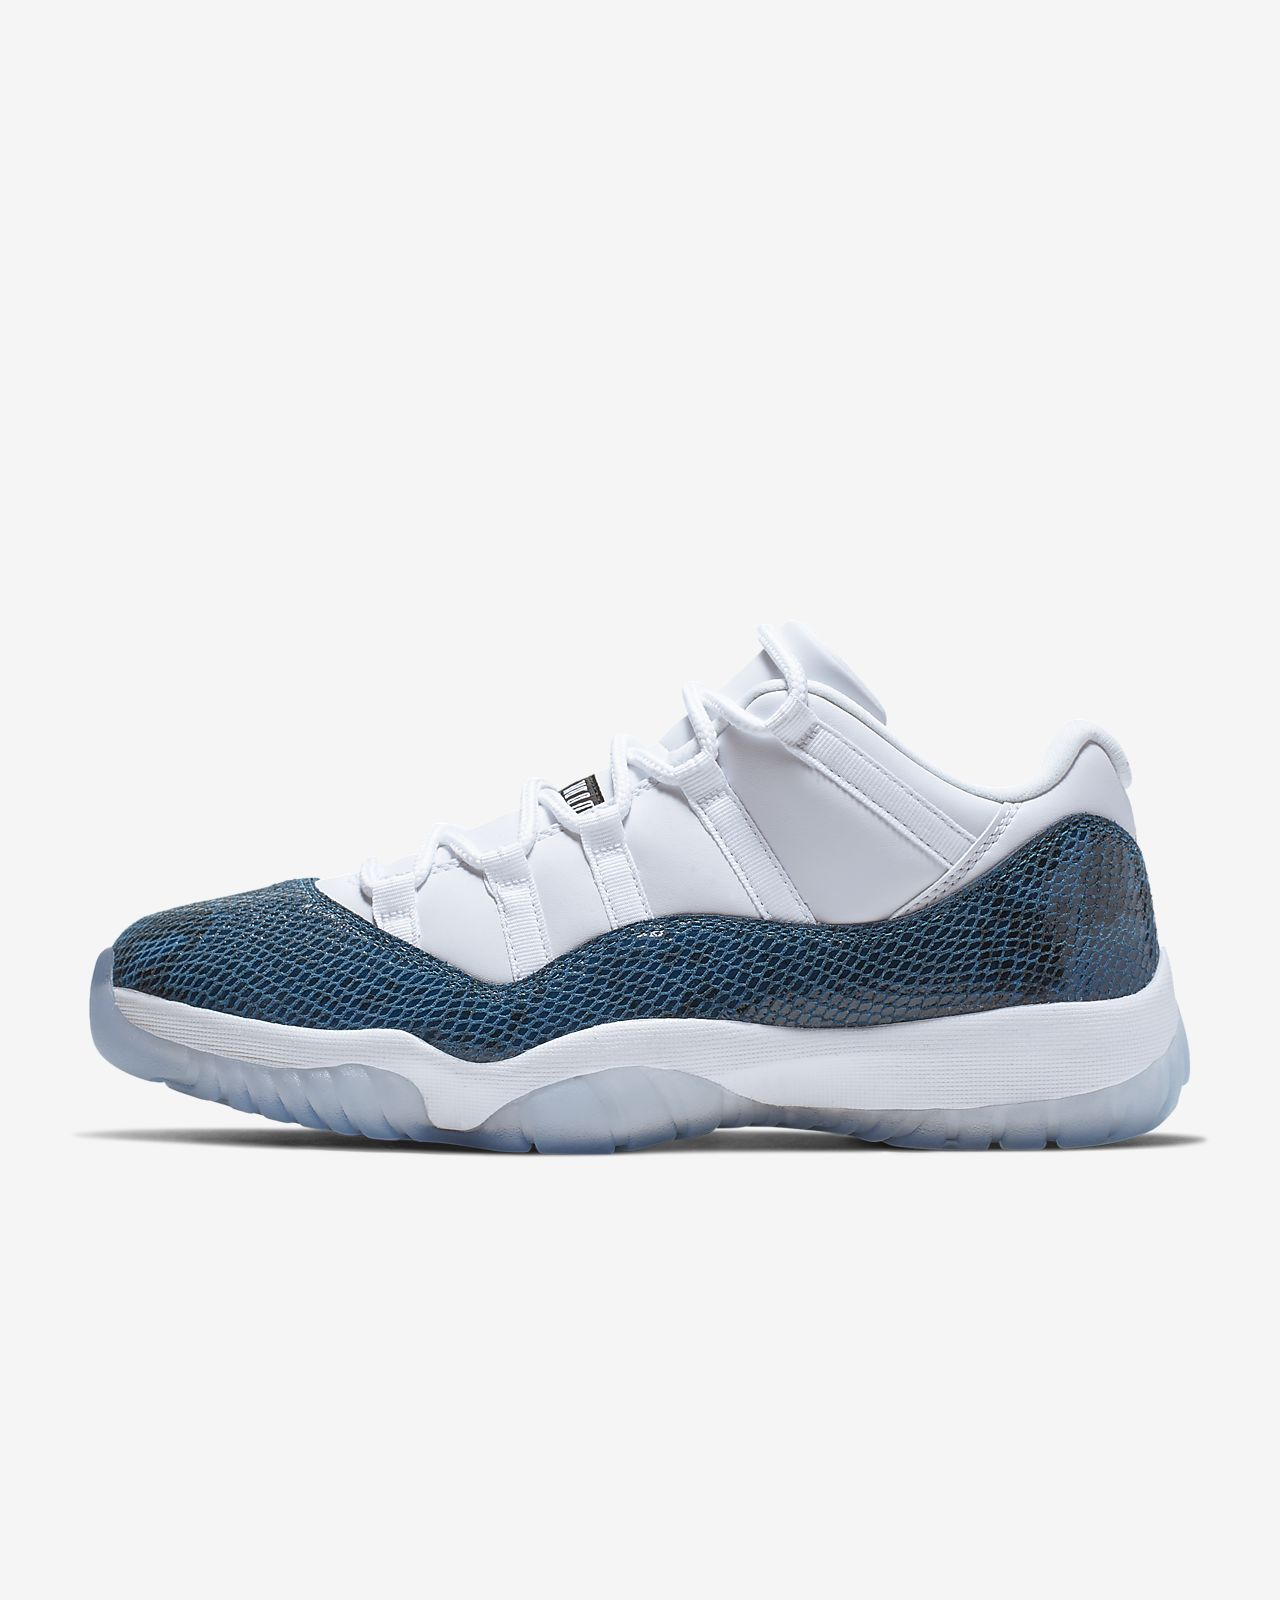 8816e18c0e8 Air Jordan 11 Retro Low LE Men's Shoe. Nike.com